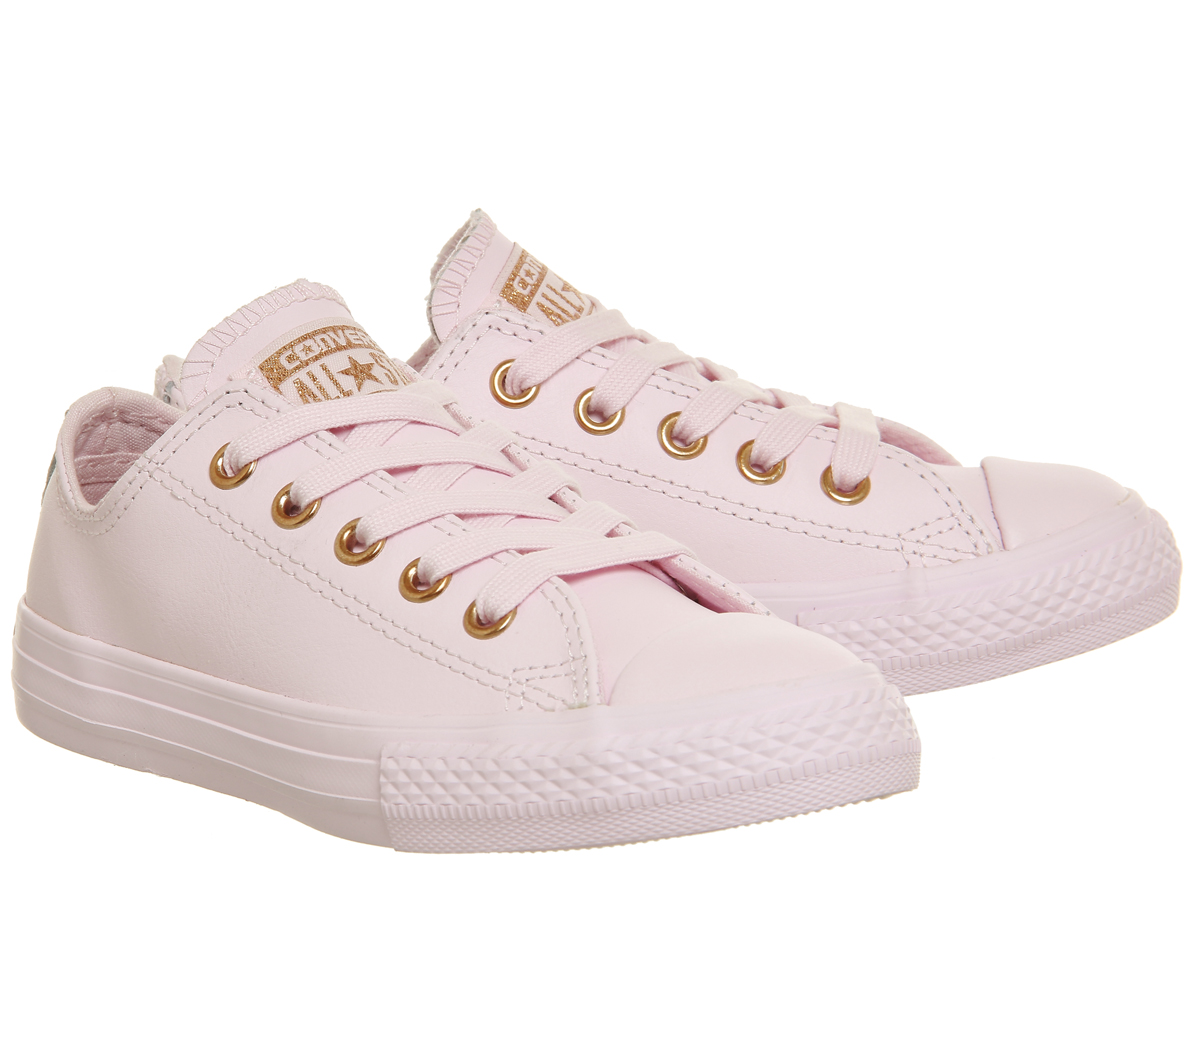 3ecad43e52e8 Kids Converse All Star Ox Leather Kids Artic Pink Rose Gold Kids